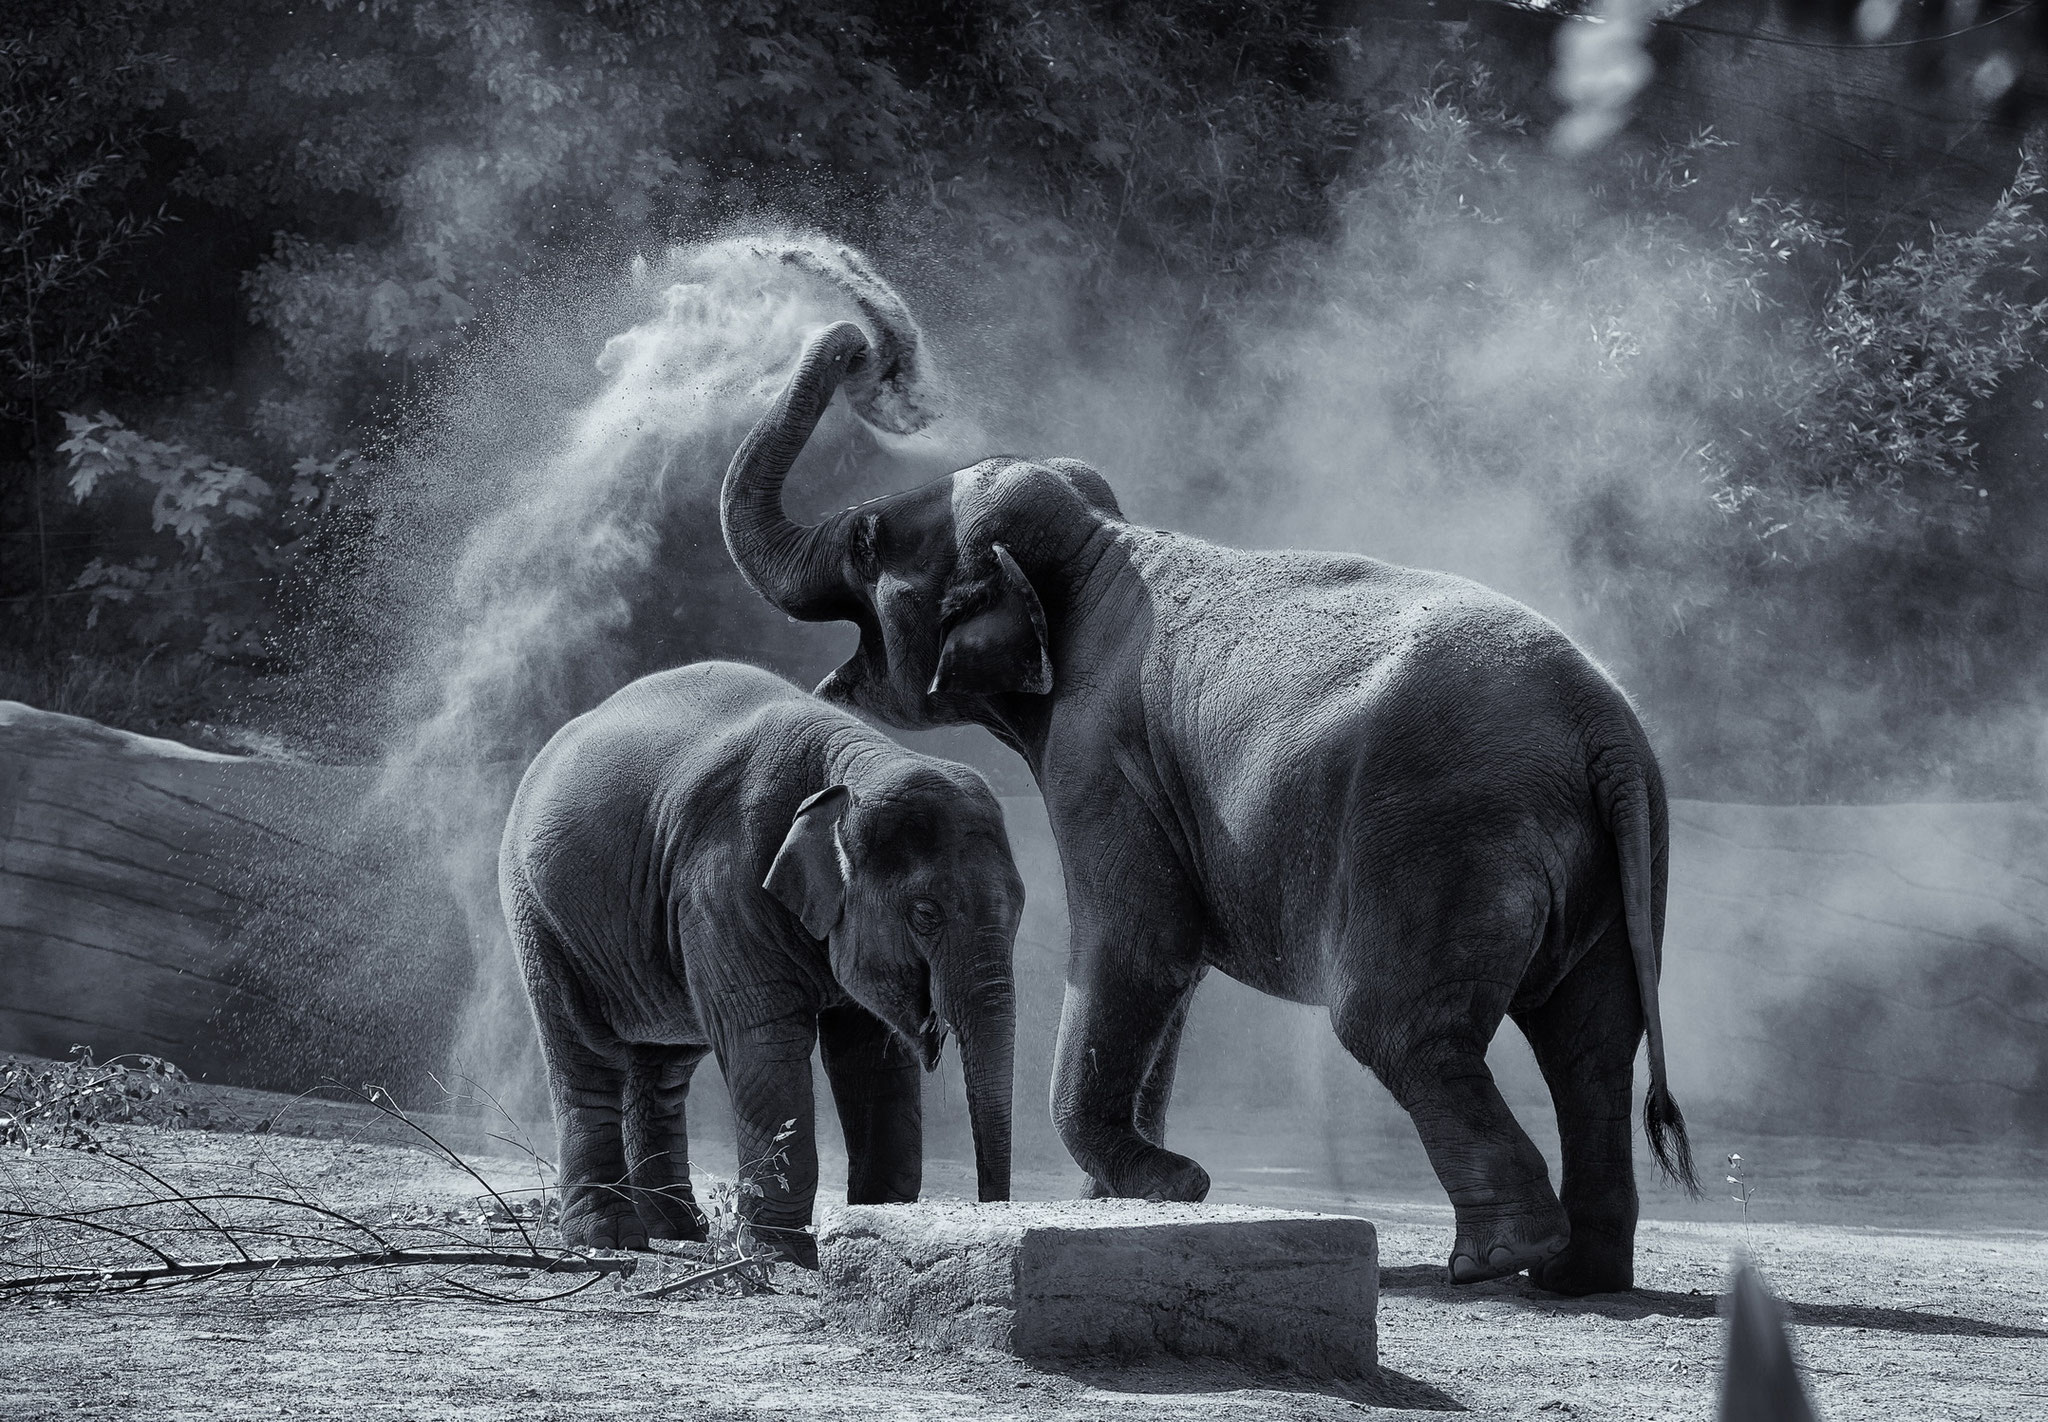 © Hans G. Lehmann | Elephants taking a sand shower at Hagenbeck-Zoo, Hamburg